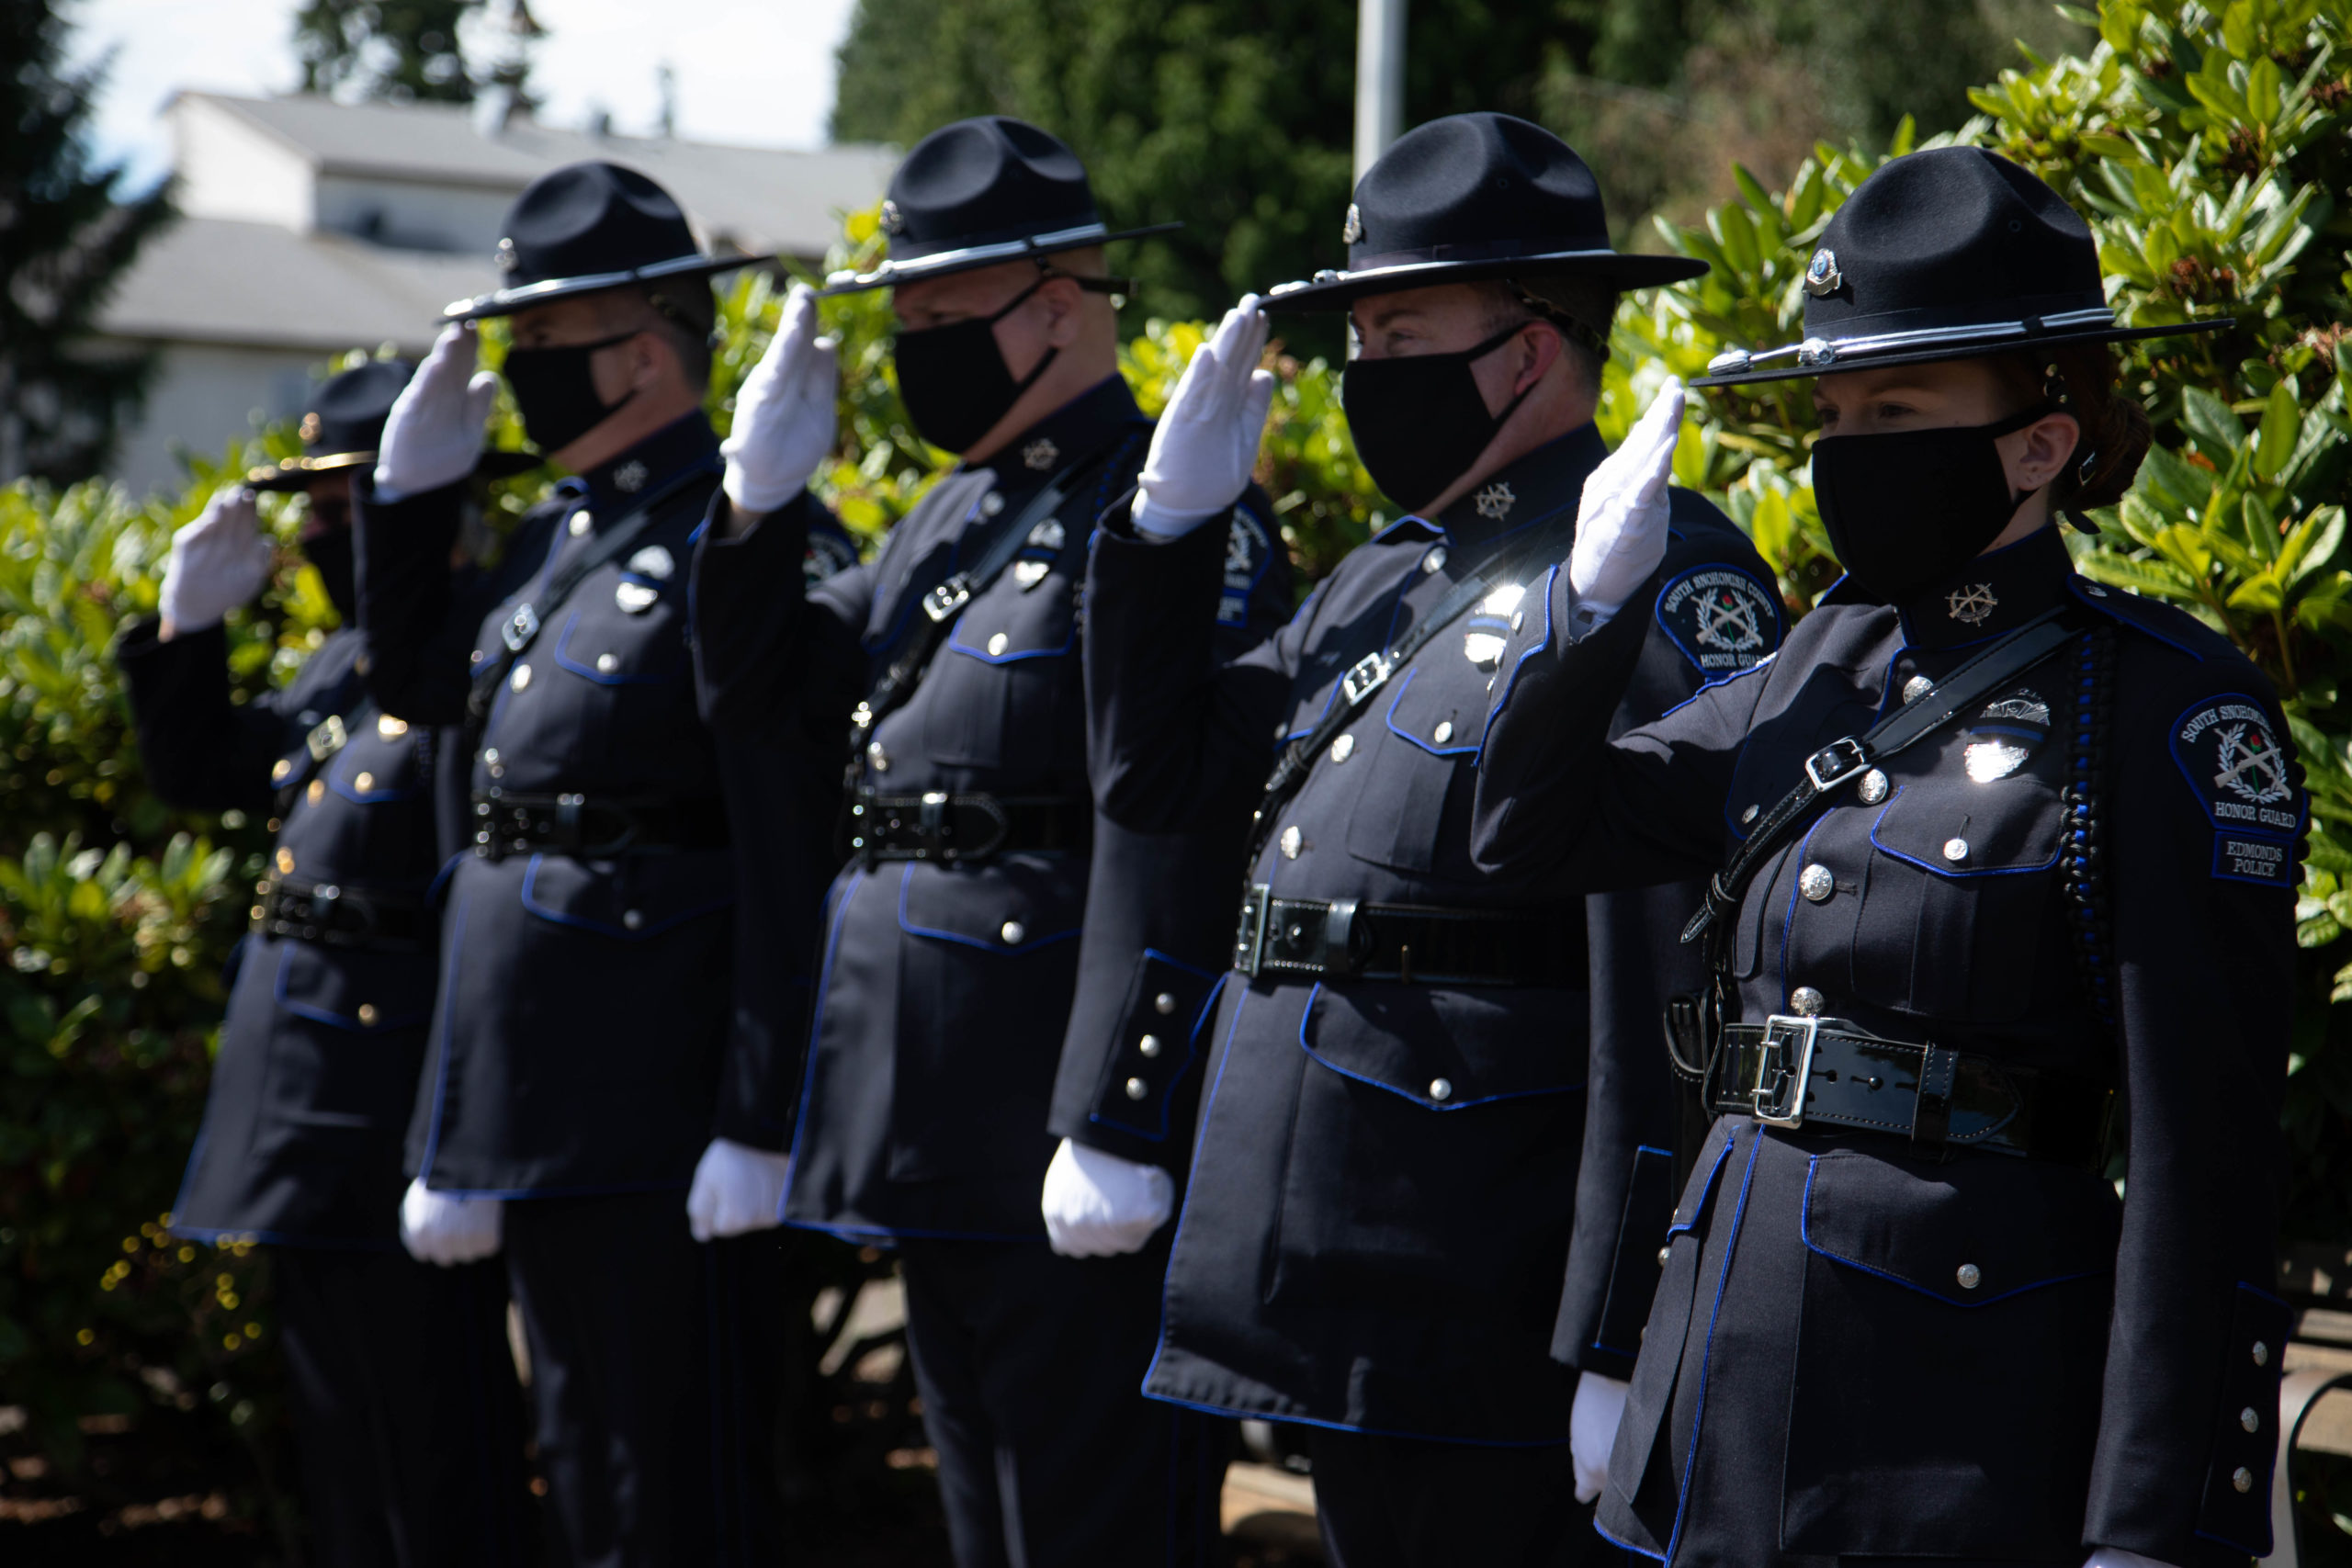 With the deepest respect members of the SSCHG stand with the families of the Bothell Police Department during this very difficult time